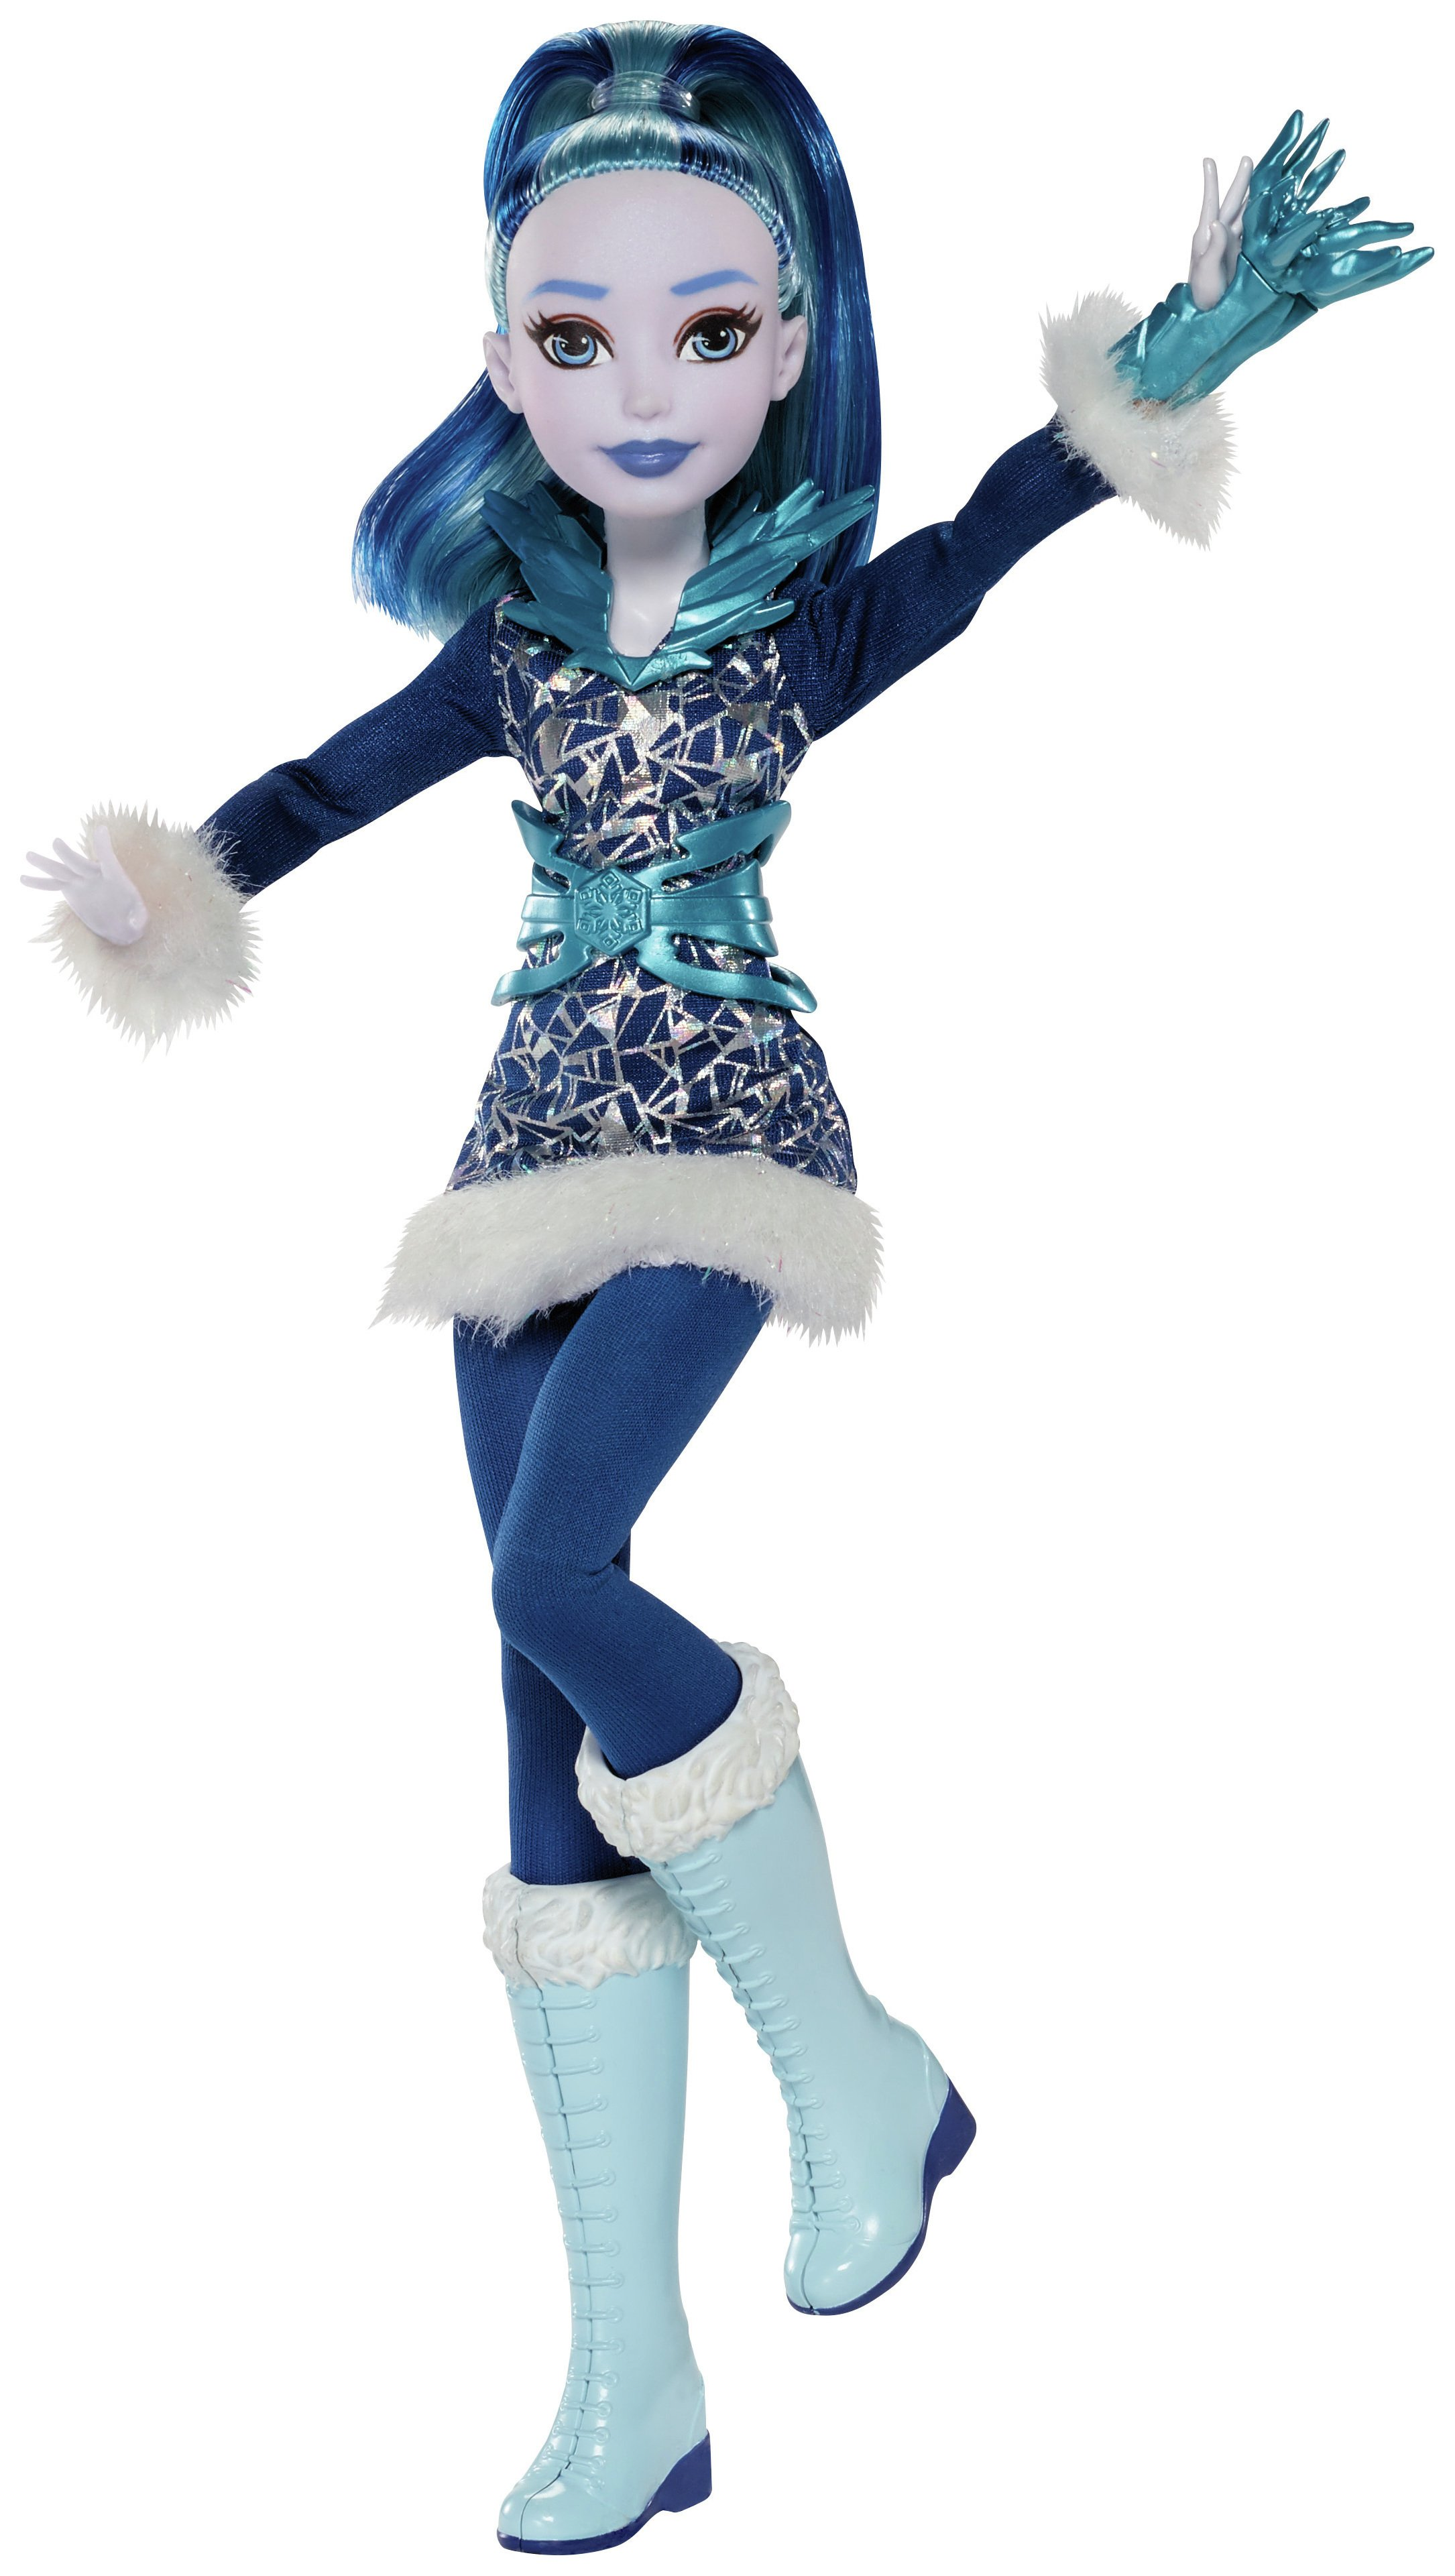 Image of DC Super Hero Girls Frost 12 Inch Action Doll